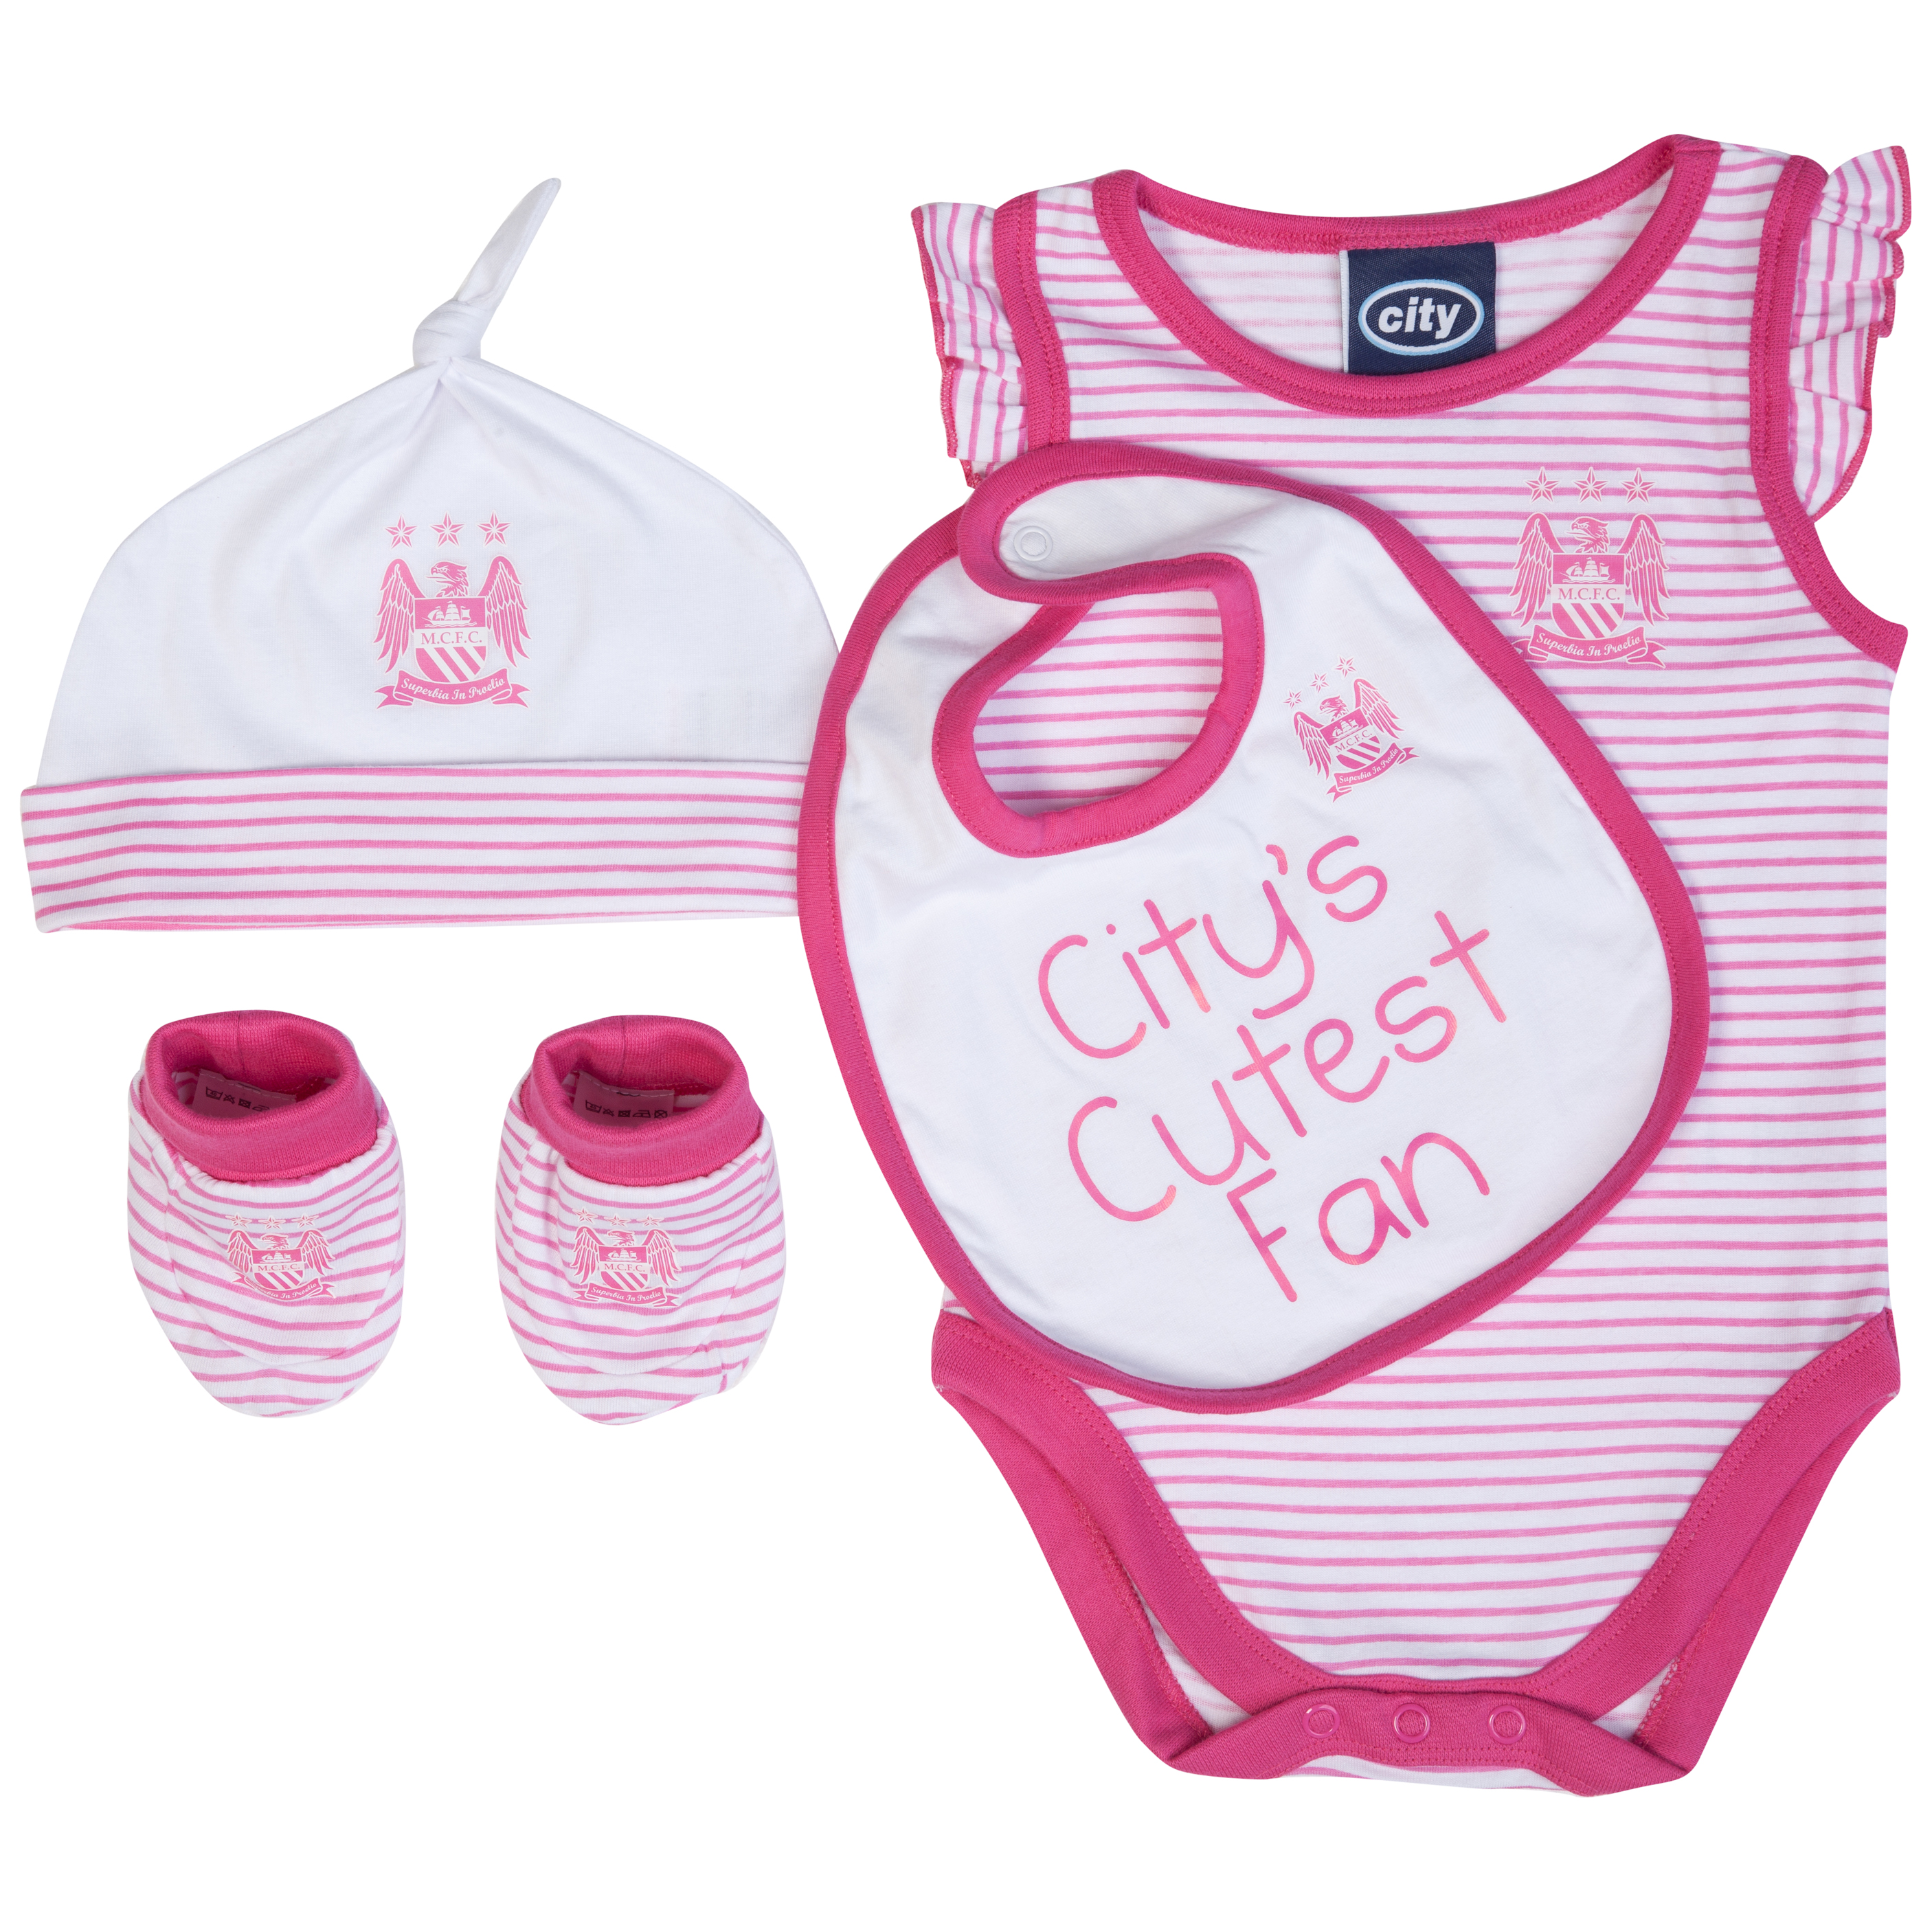 Manchester City 4 piece Gift Set - Pink/White - Baby